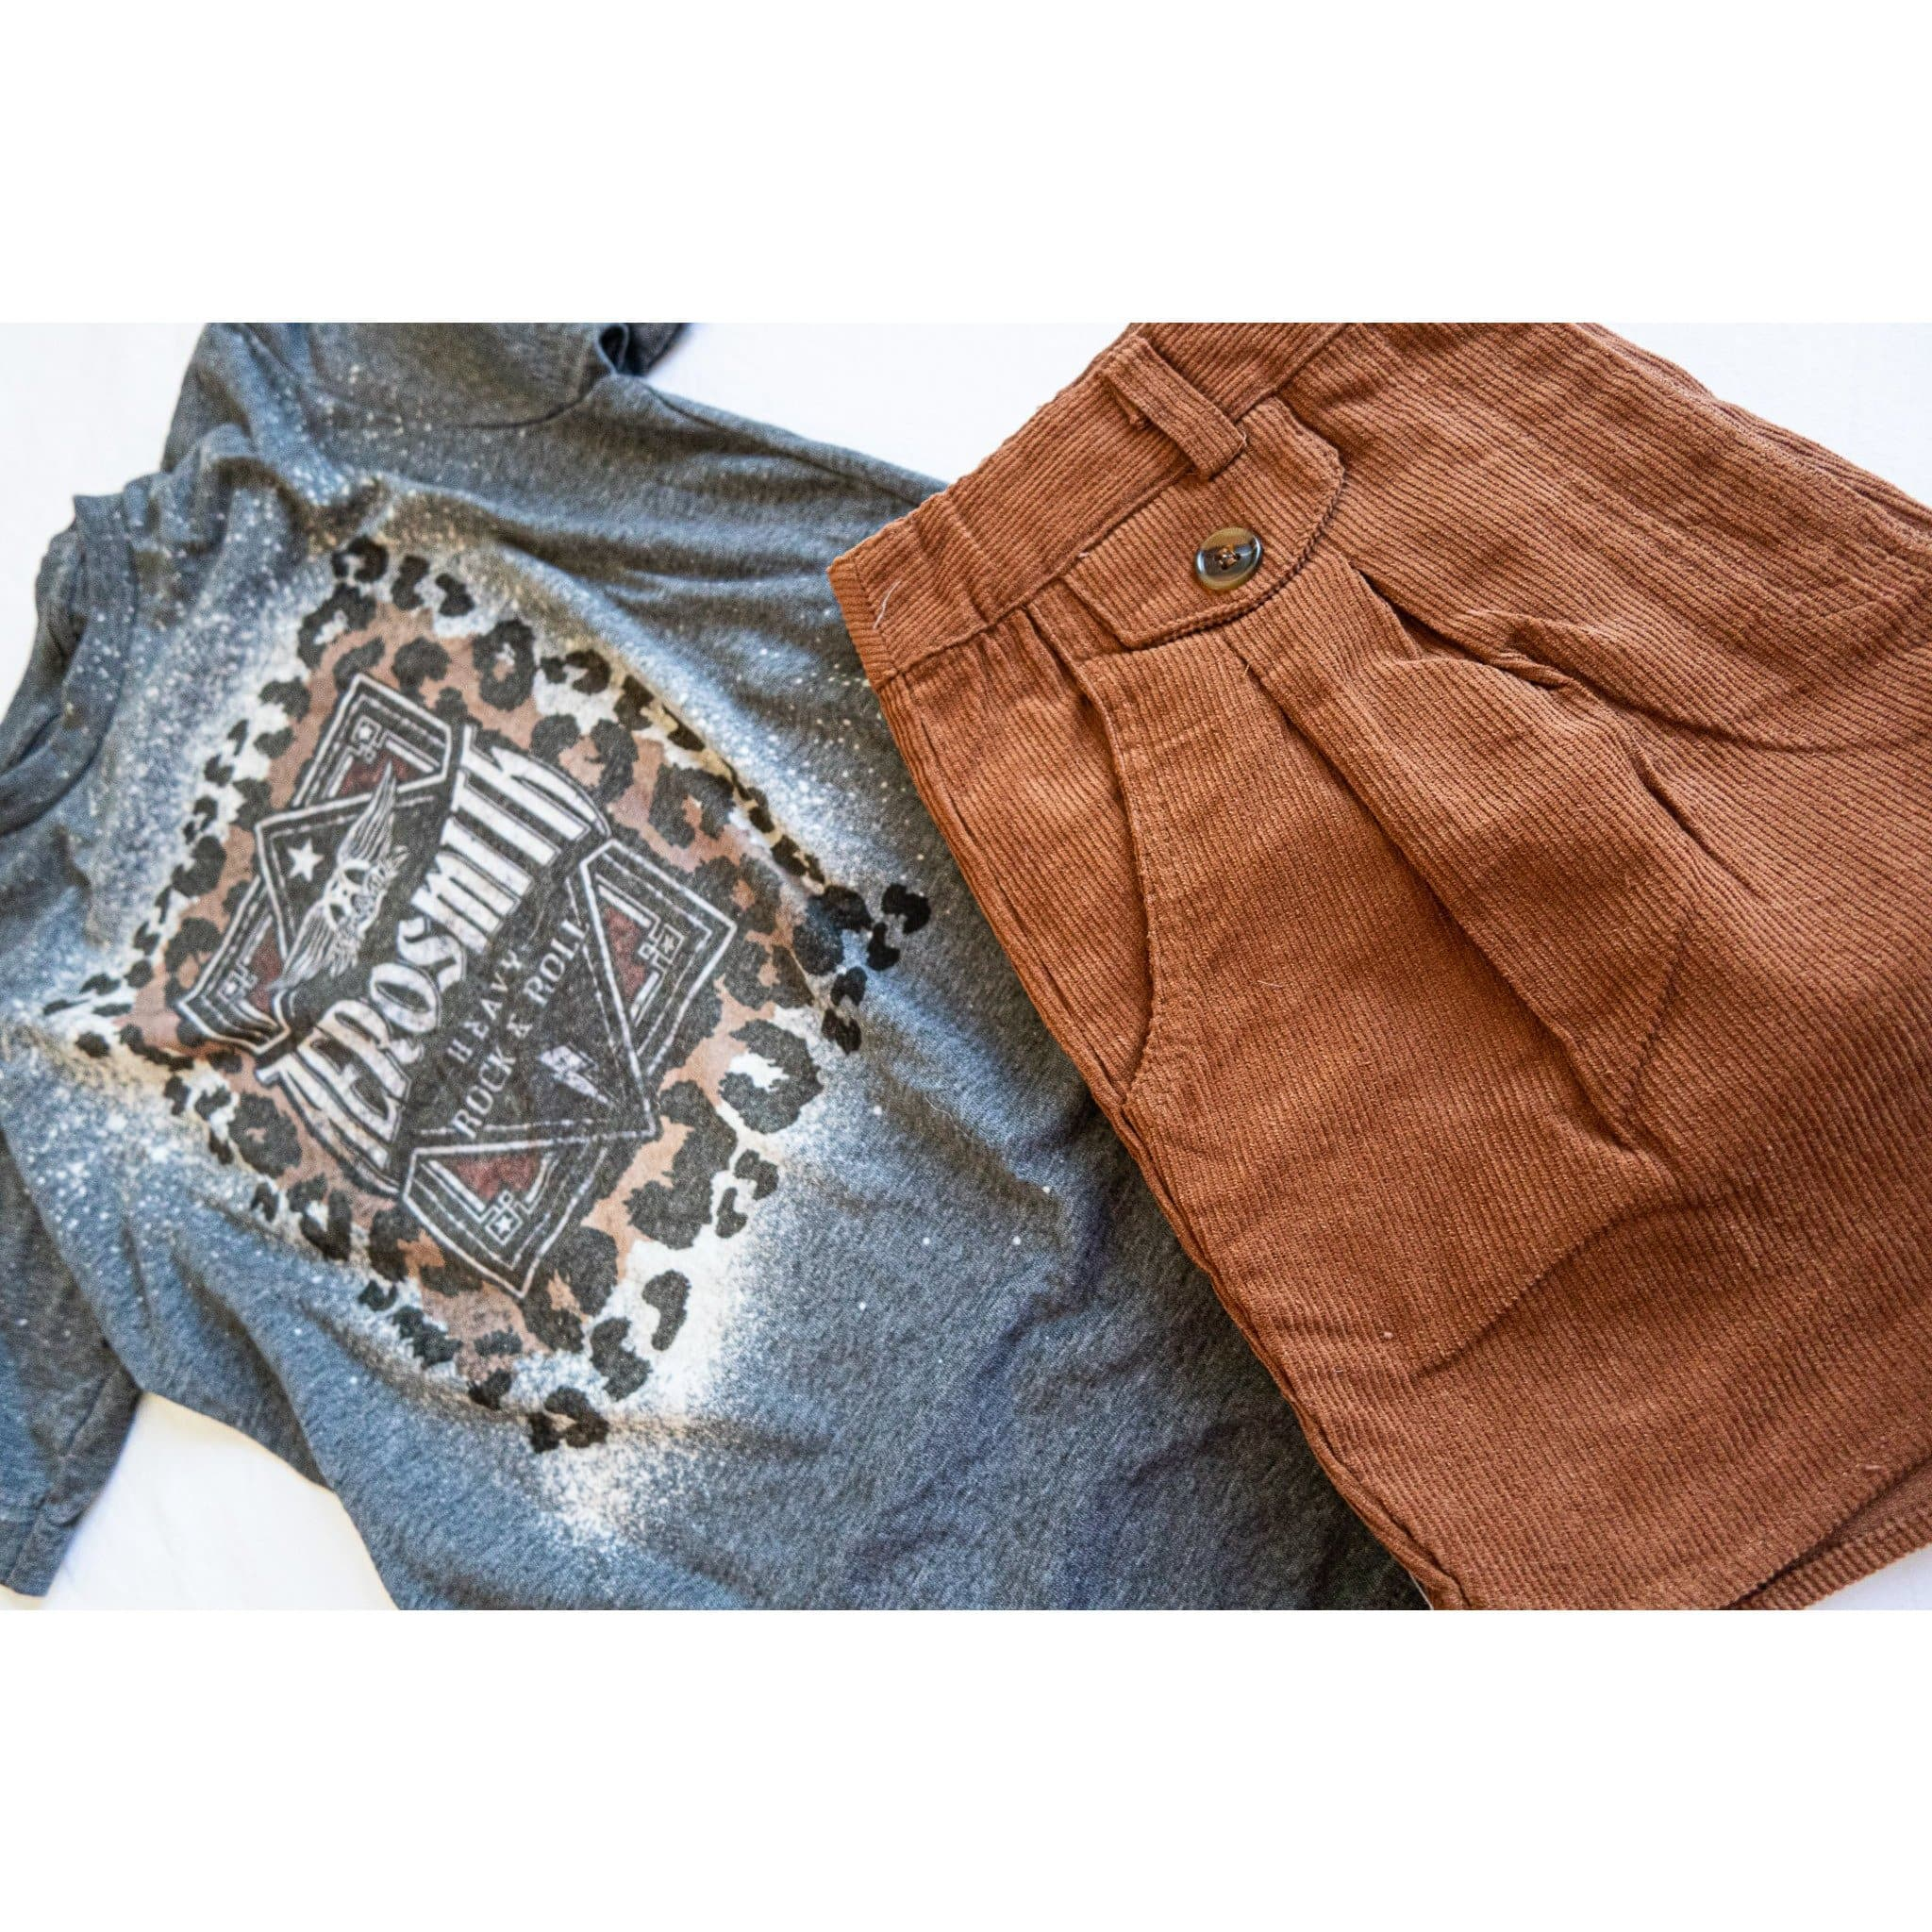 aerosmith graphic band tee paired with back in time burnt orange corduroy shorts for women. trendy casual boutique clothing for women